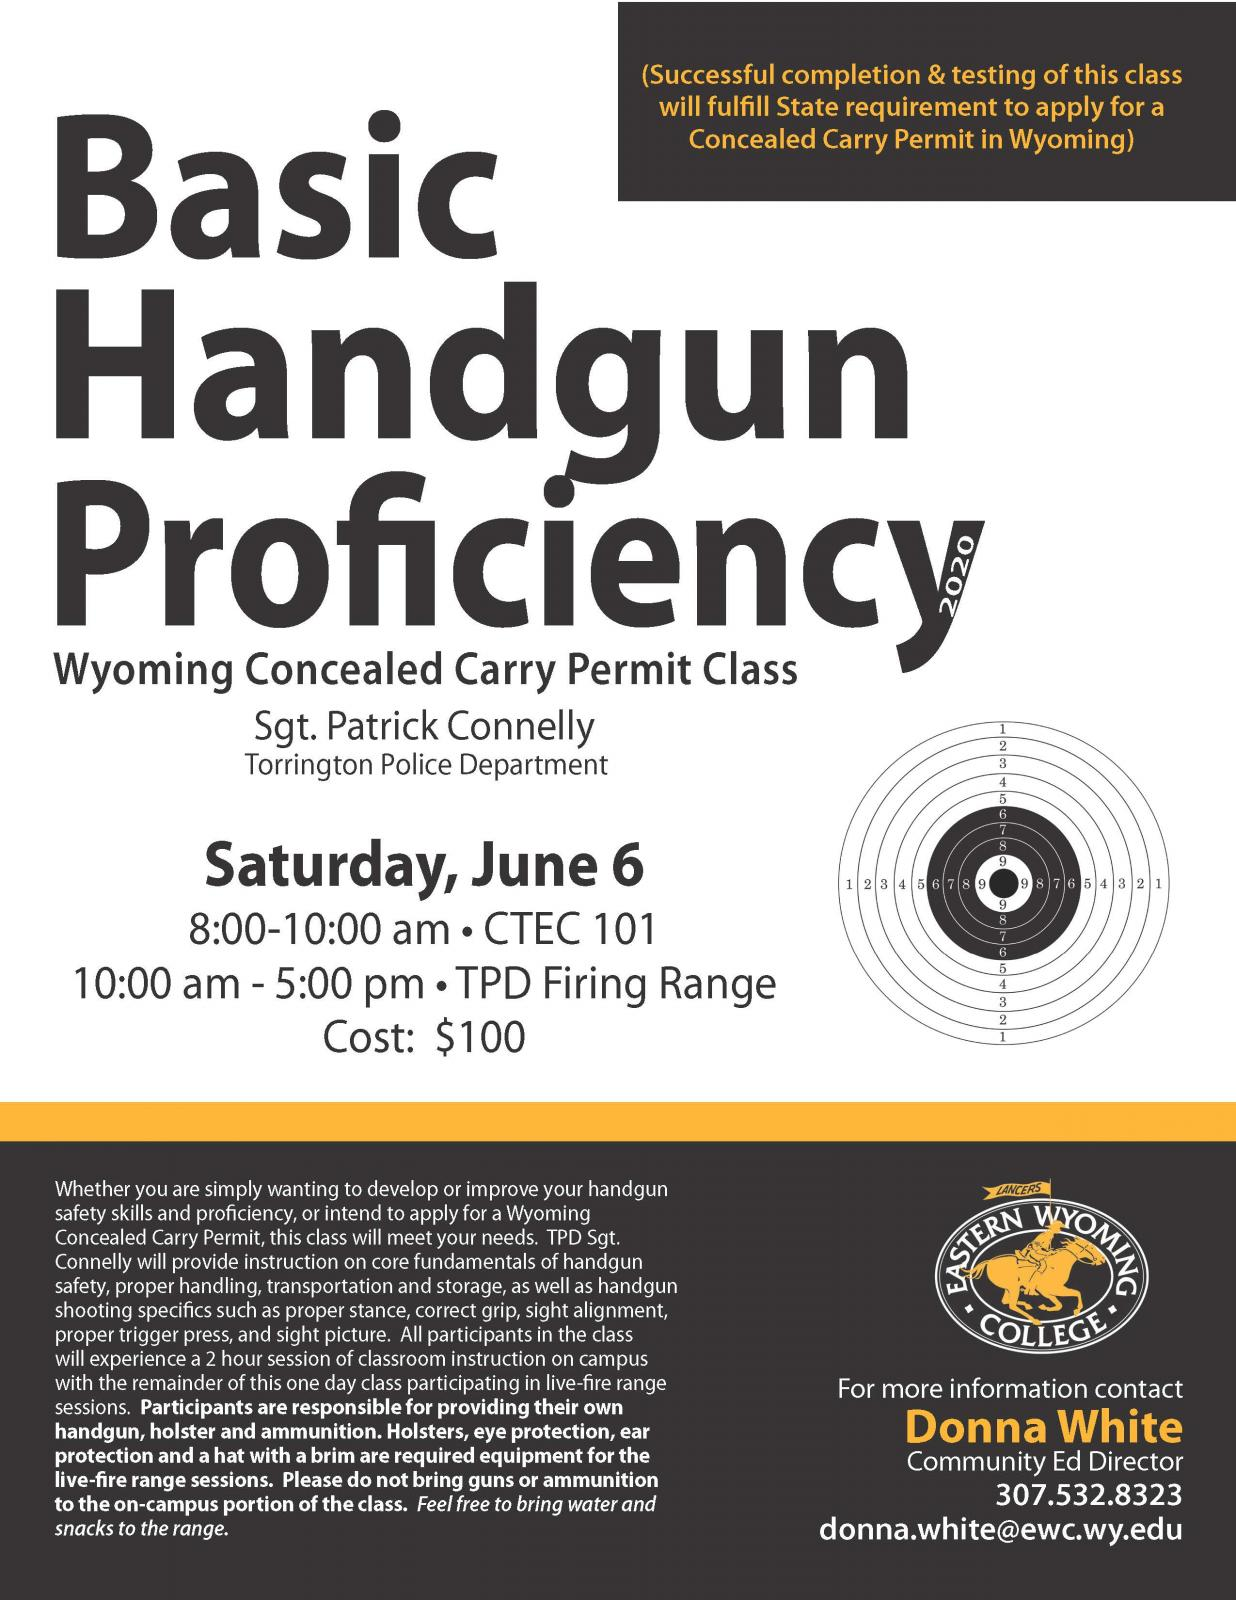 Basic Handgun Proficiency Wyoming Concealed Carry Permit Class Photo